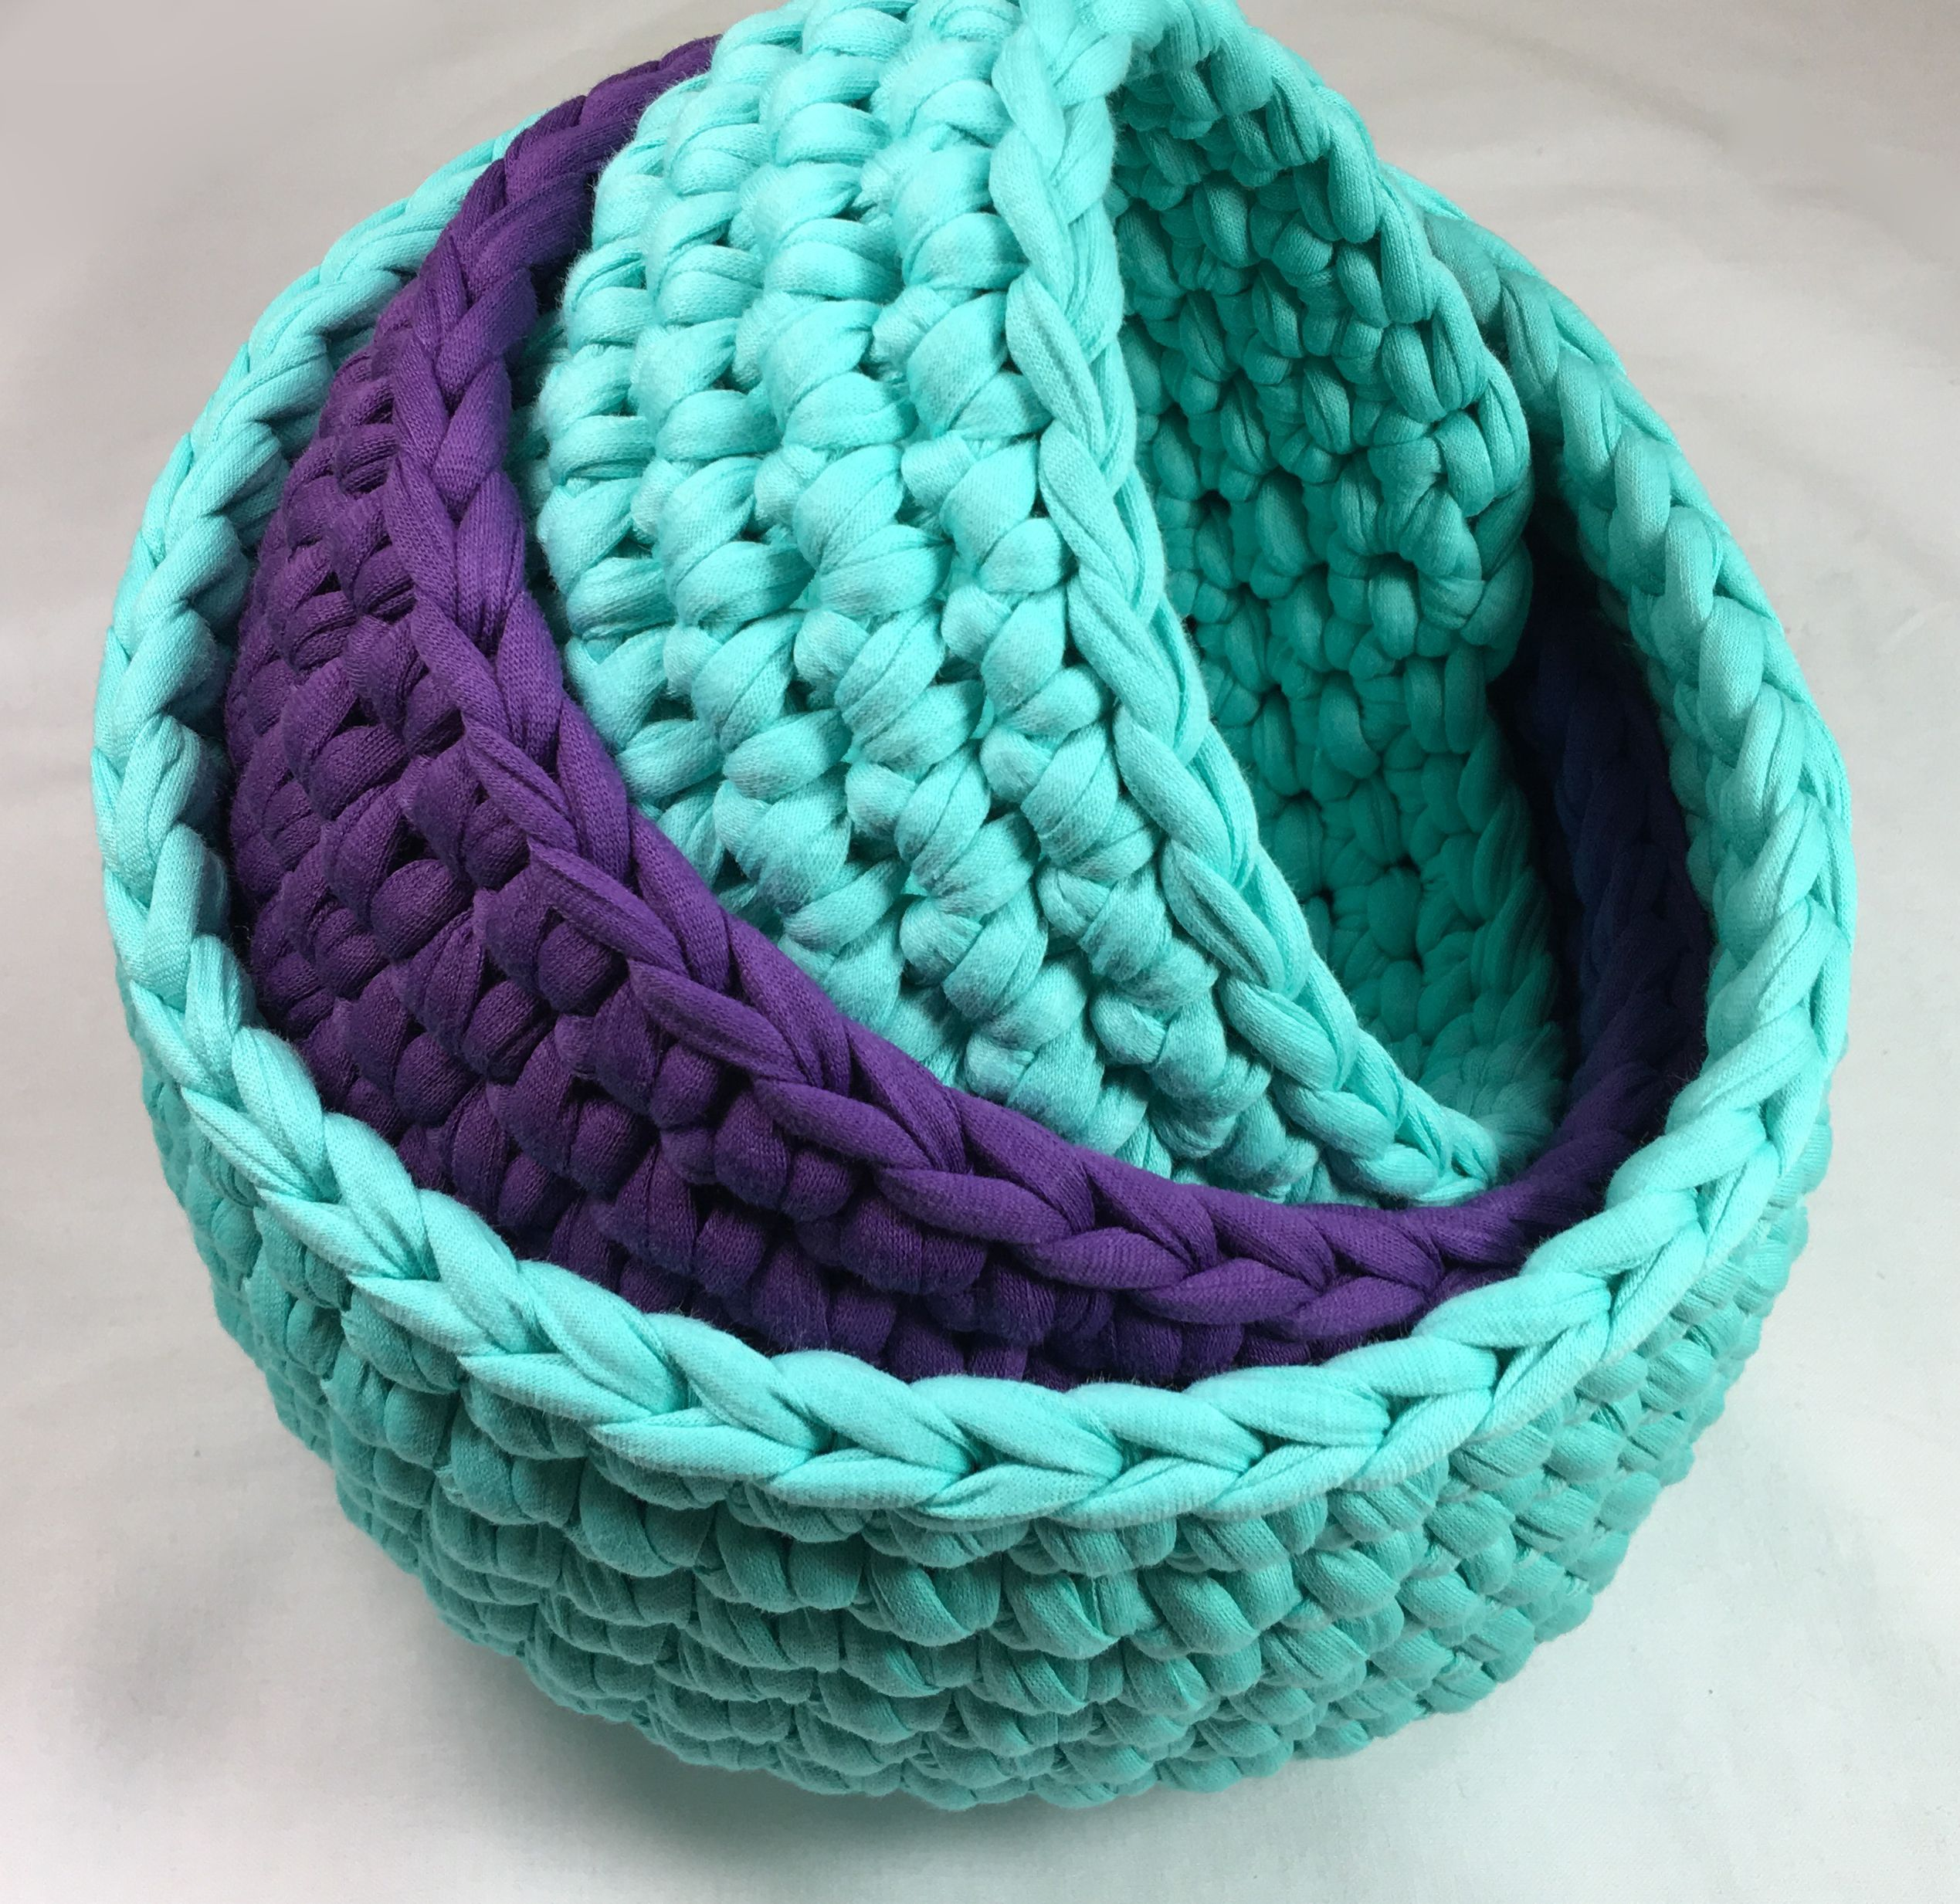 Using t-shirt yarn, make these three baskets in a night or two to ...